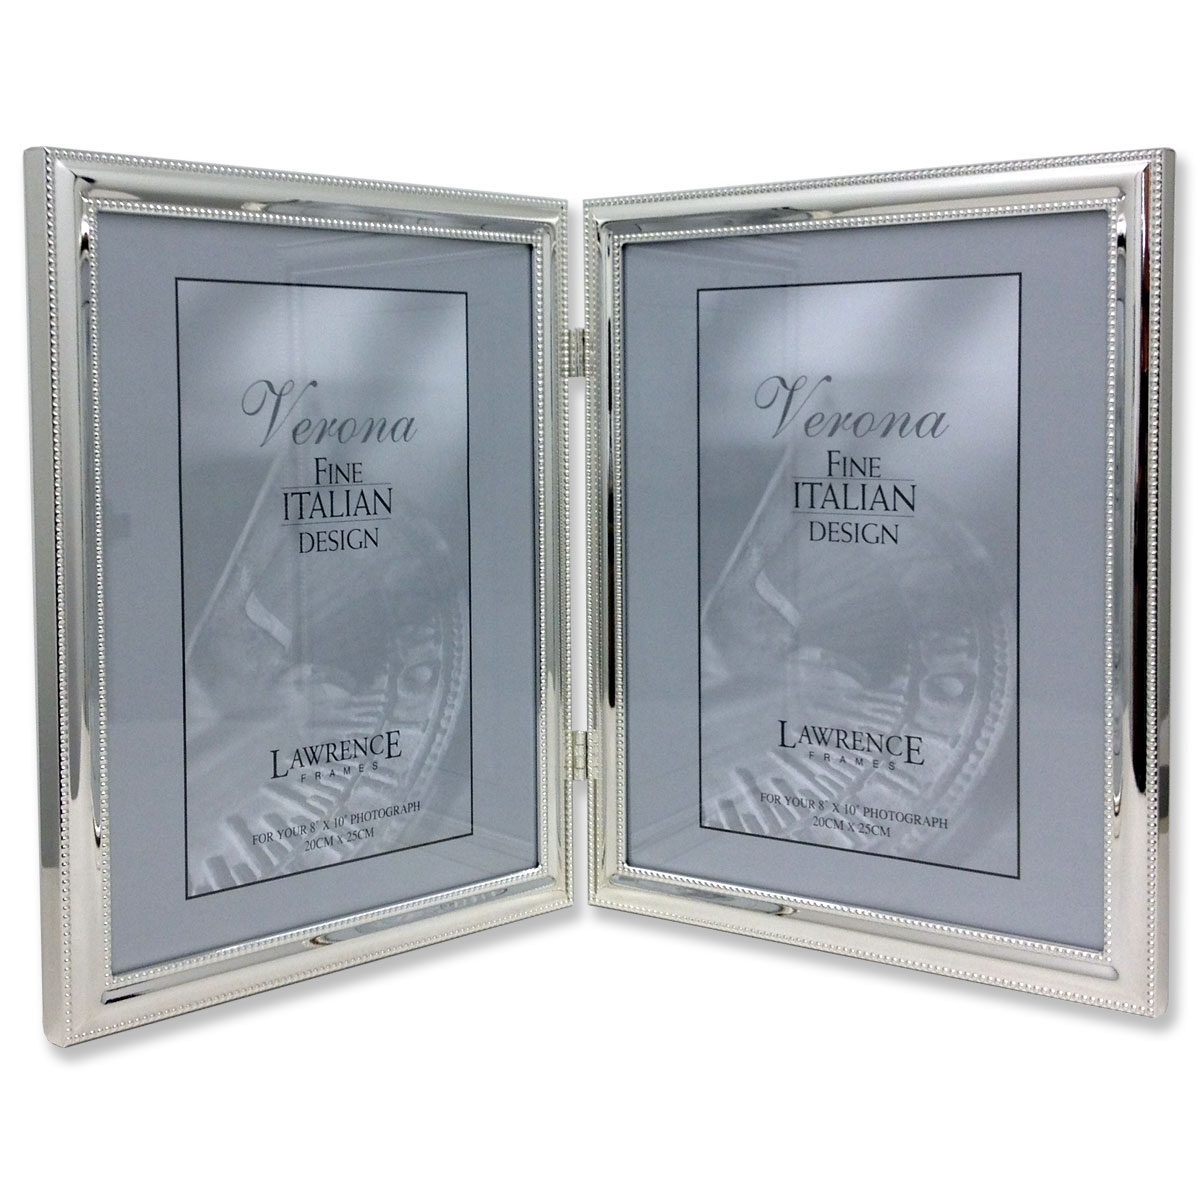 510780d silver plated double bead 8x10 hinged double picture frame 510780d silver plated double bead 8x10 hinged double picture frame jeuxipadfo Gallery